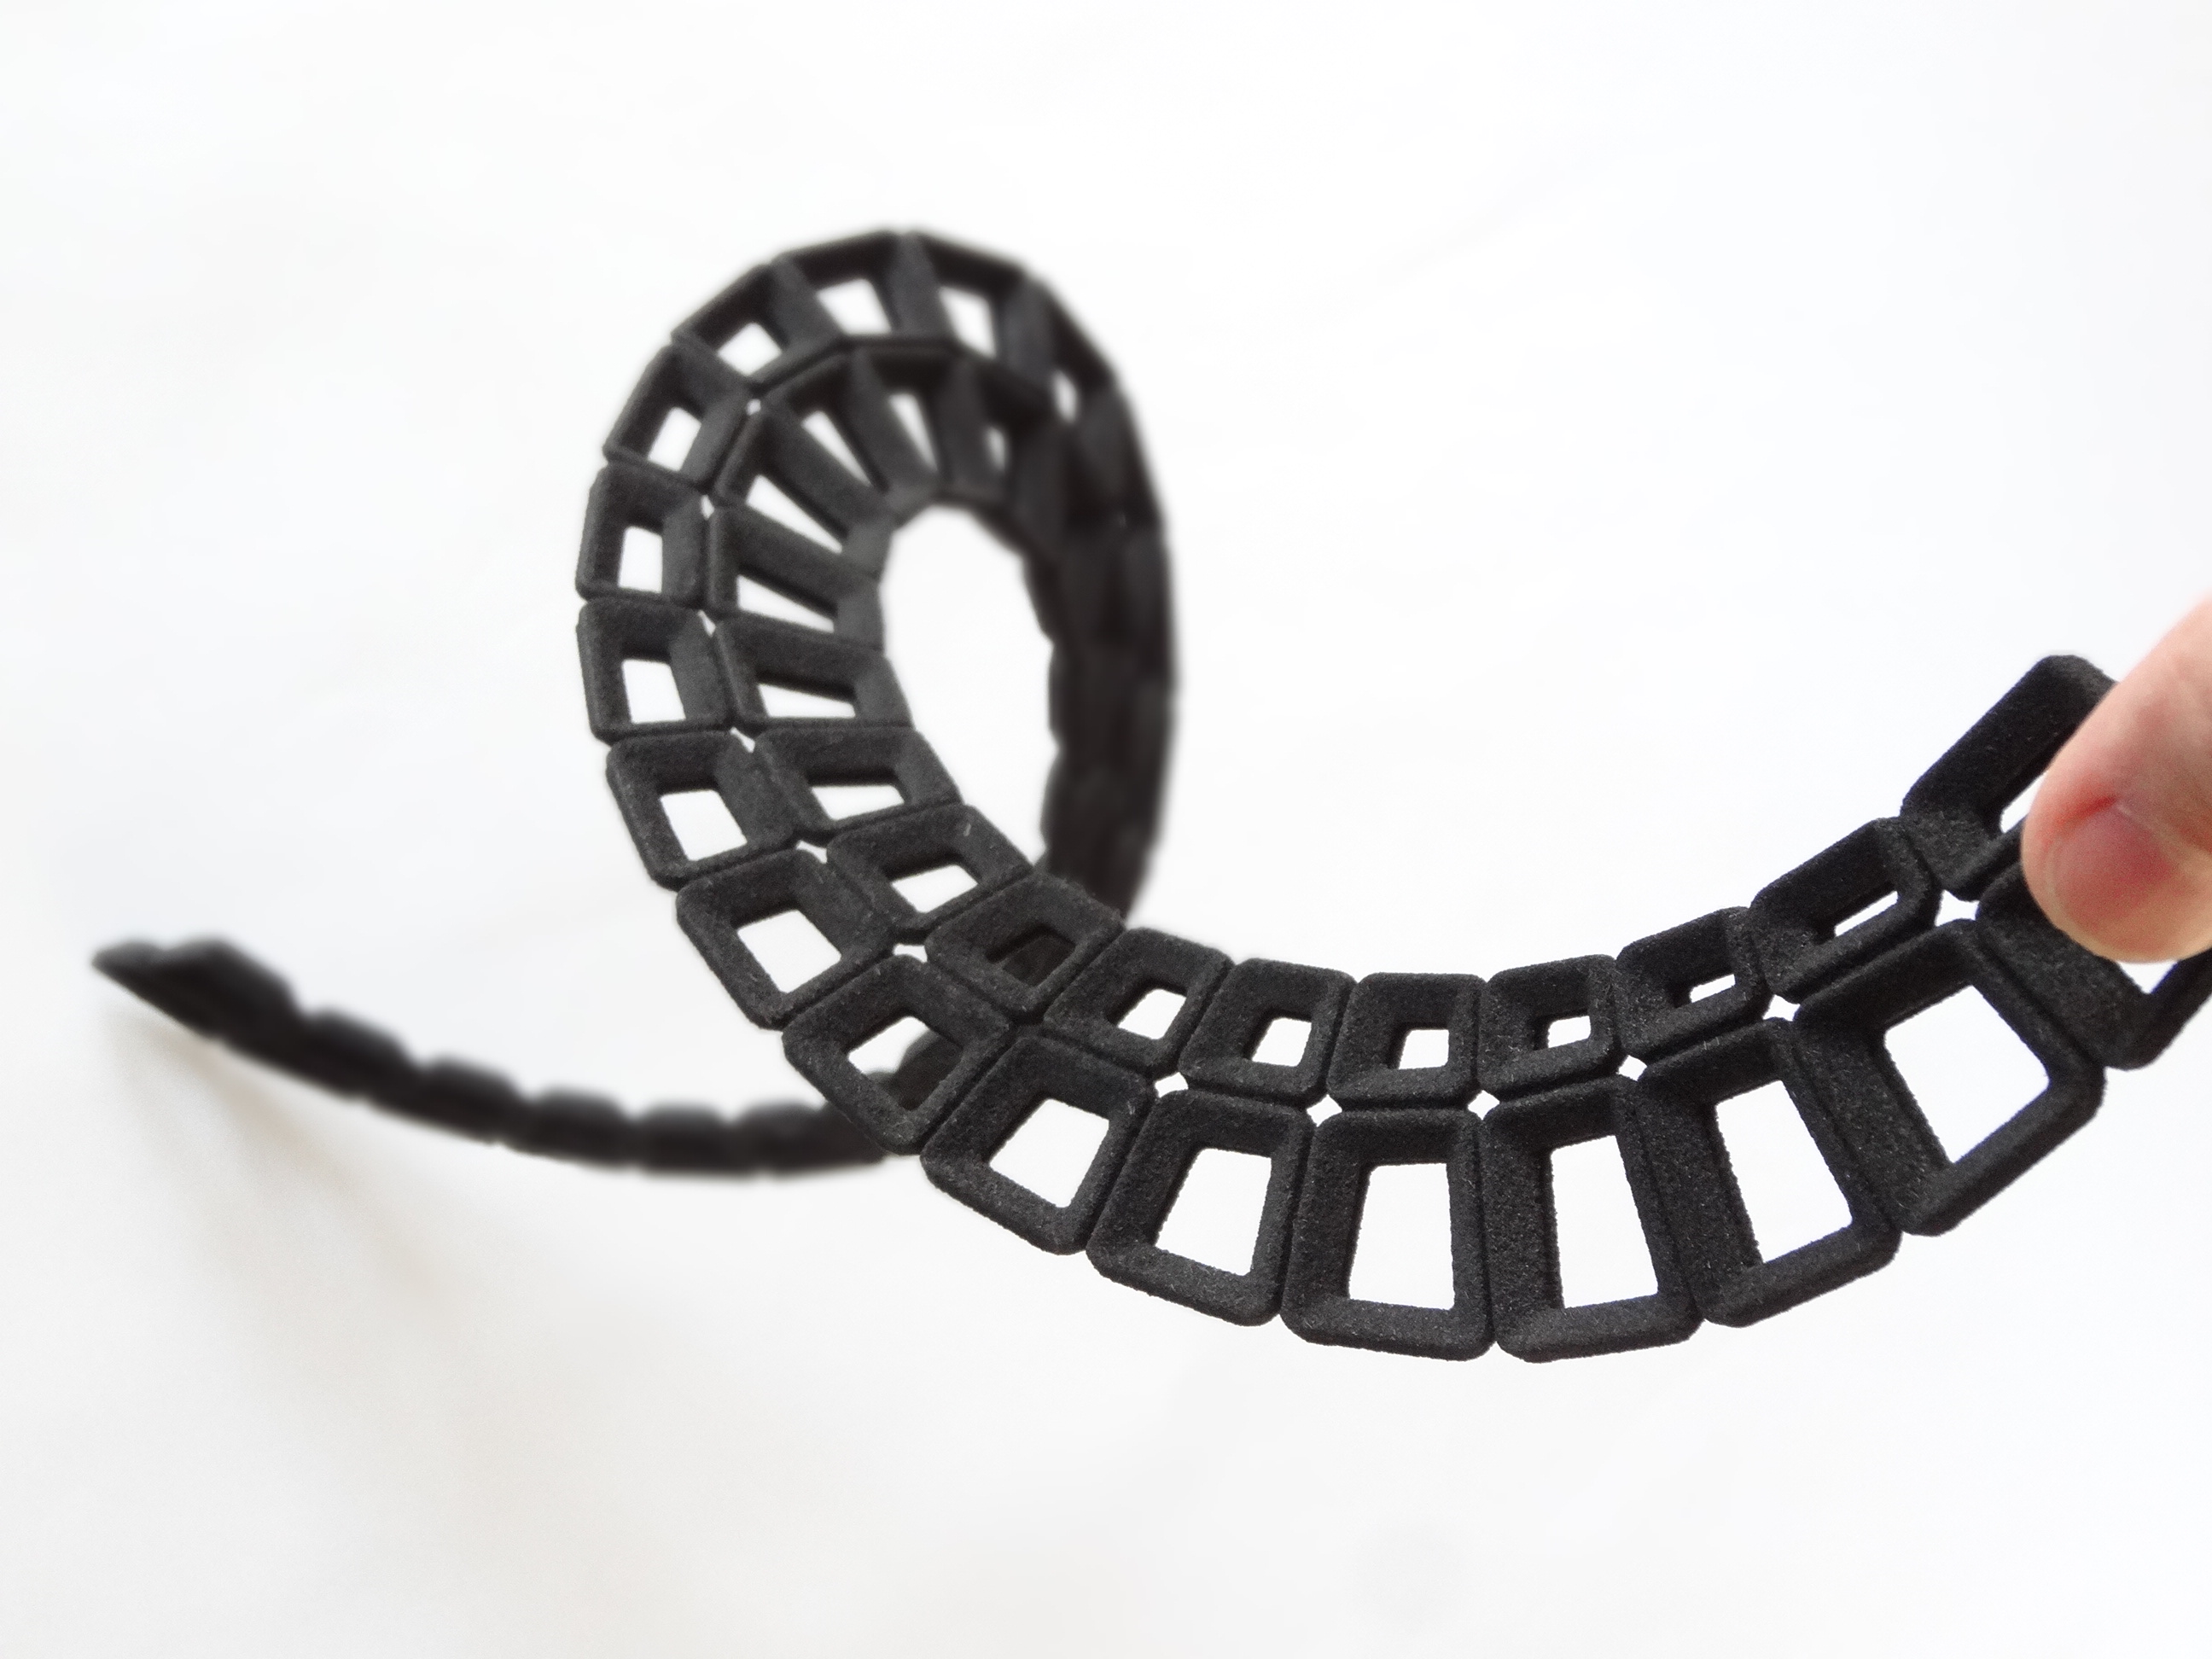 3D Printing in Rubber-like with Cristian Marzoli